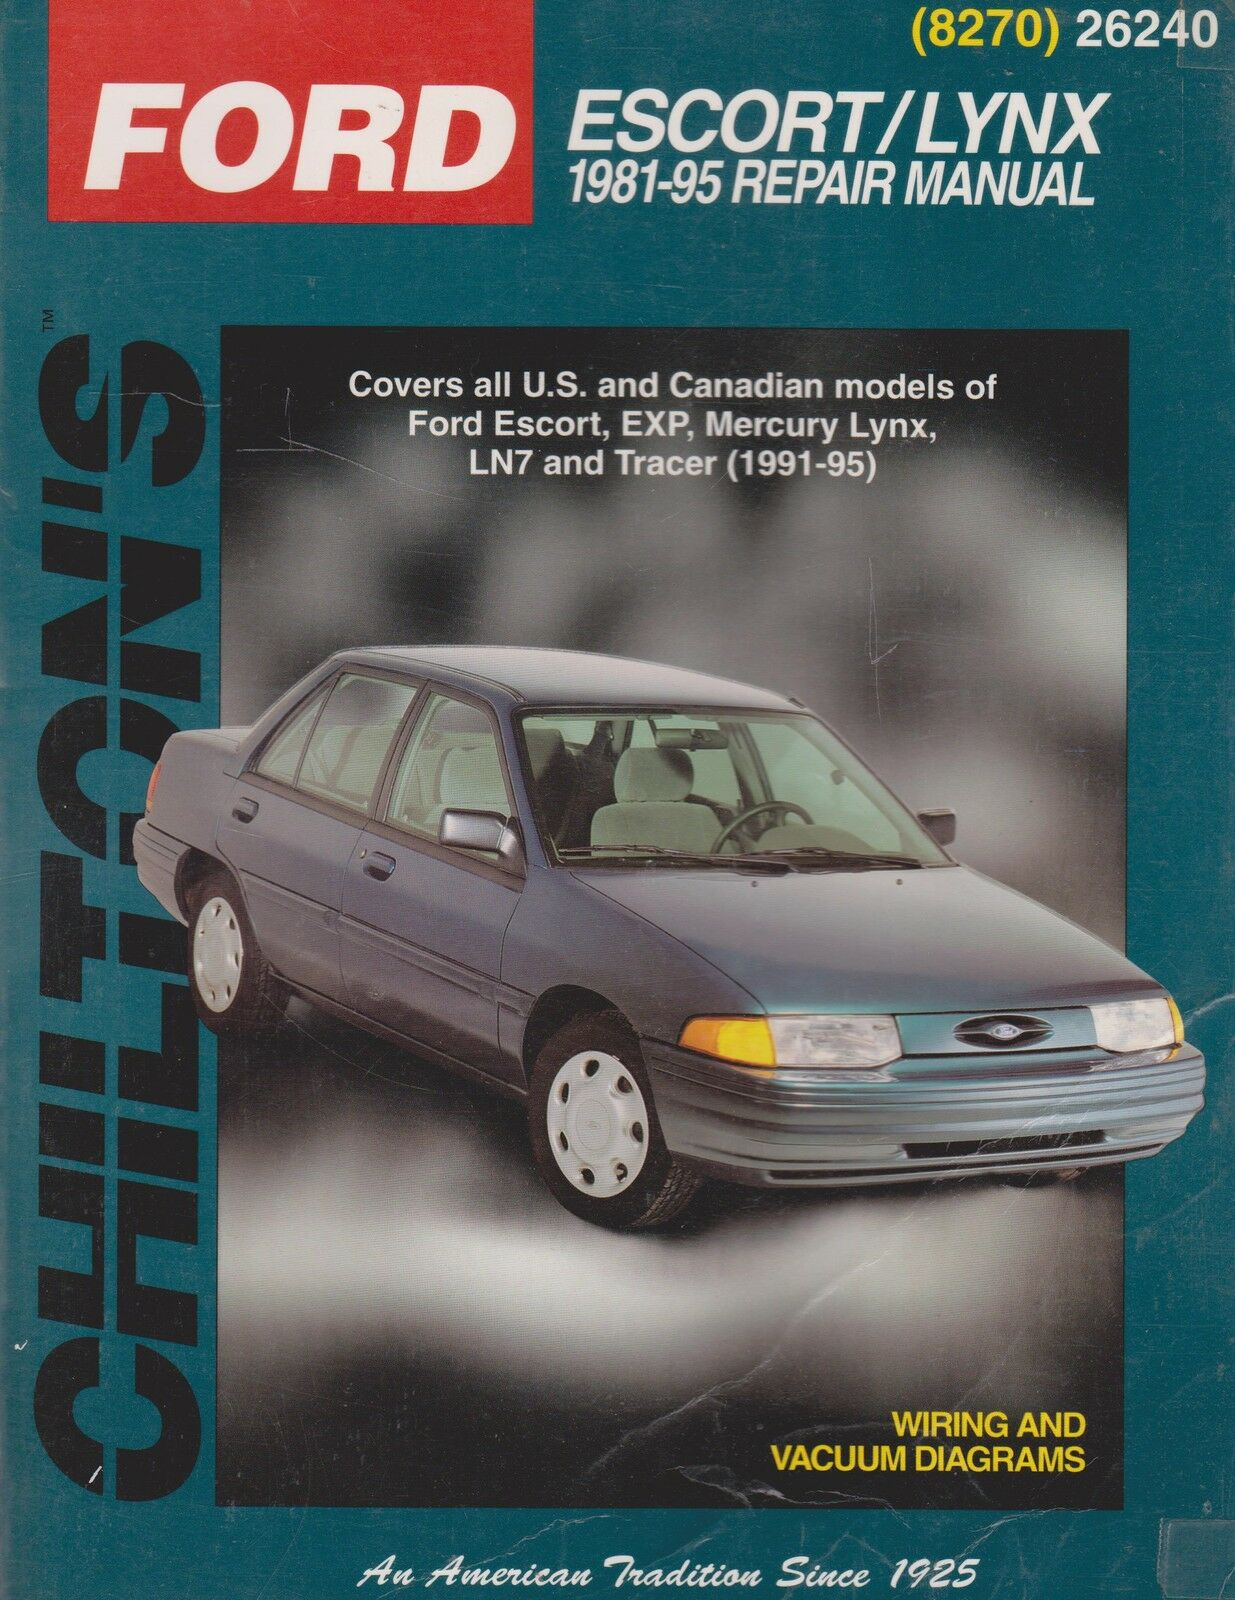 Chilton's Total Car Care: Ford Escort and Mercury Lynx, 1981-95 by Chilton  Automotive Editorial Staff (1998, Paperback) | eBay